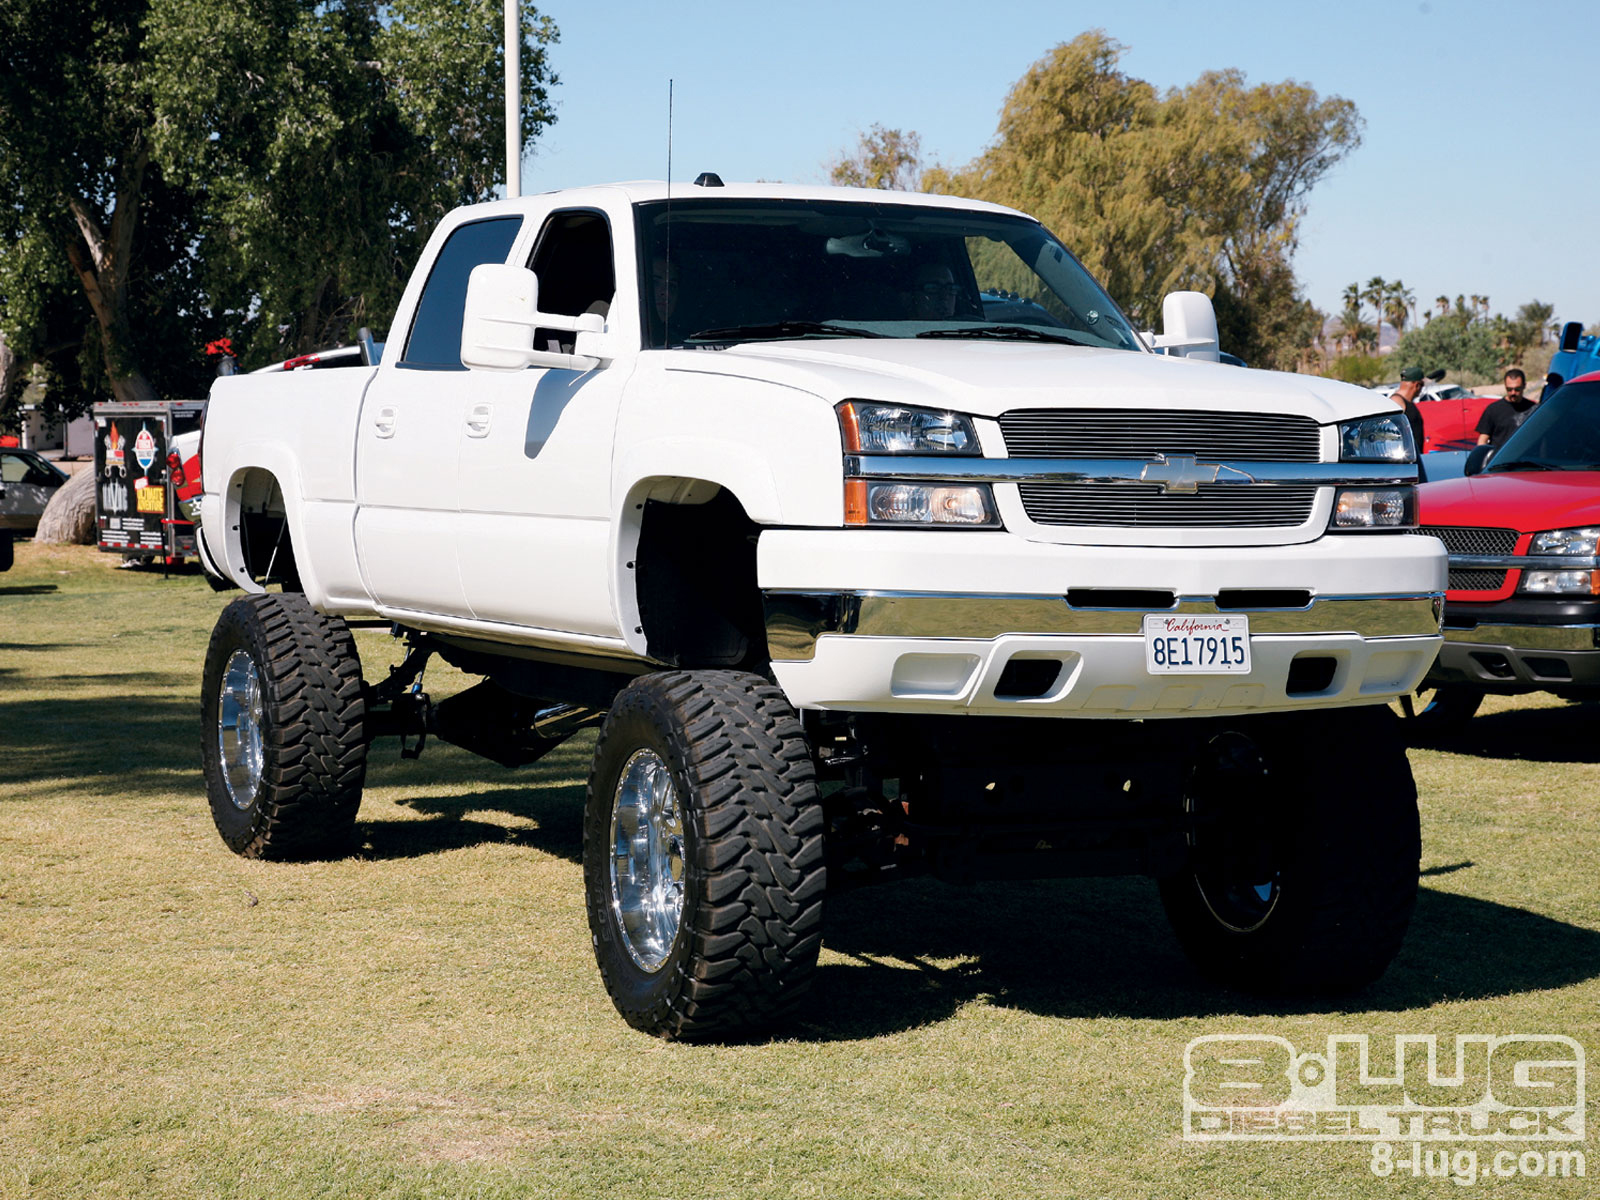 Chevy Trucks Lifted AxZcO5bE   FewMocom Cool Car Wallpaper 1600x1200